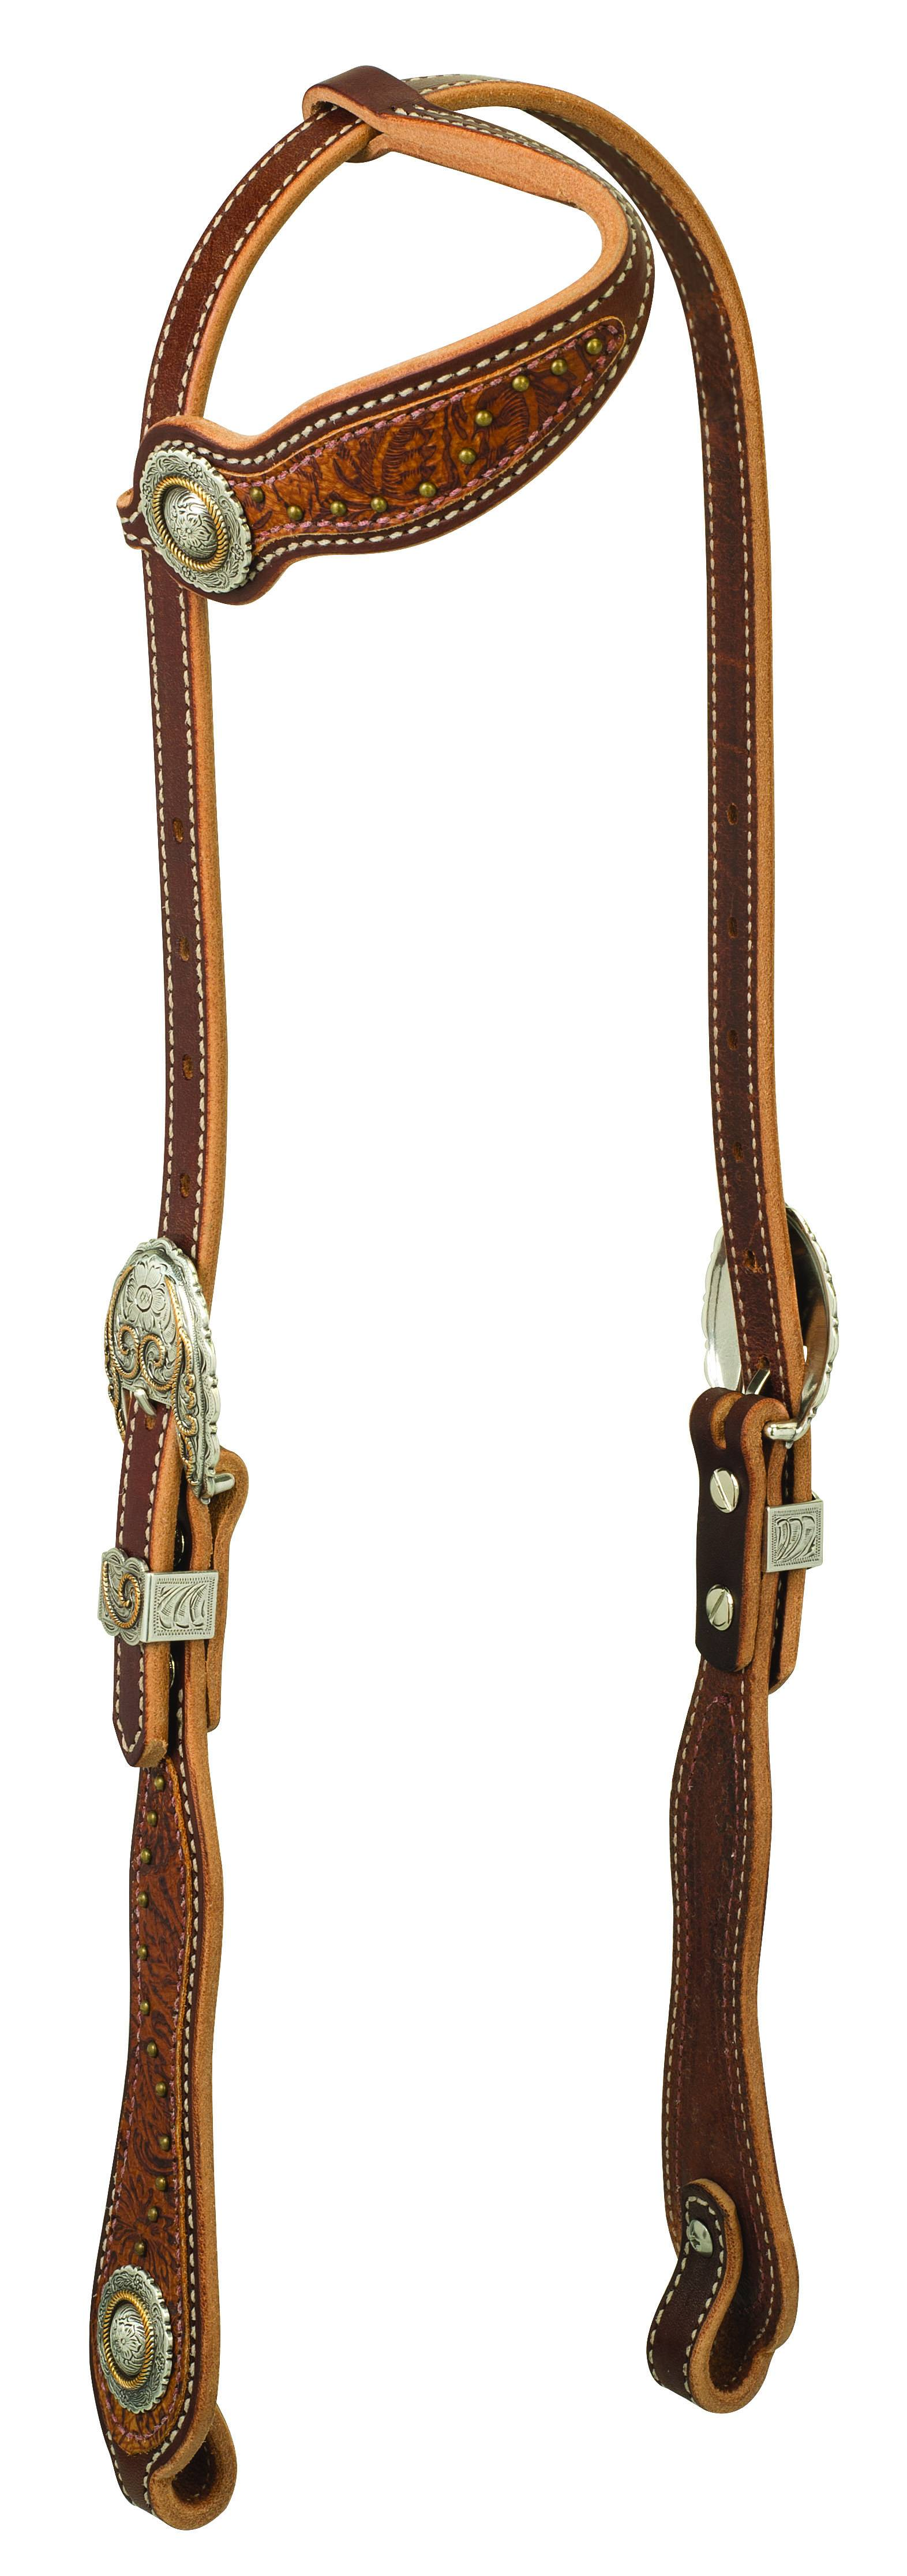 Weaver Western Edge Sliding Ear Headstall